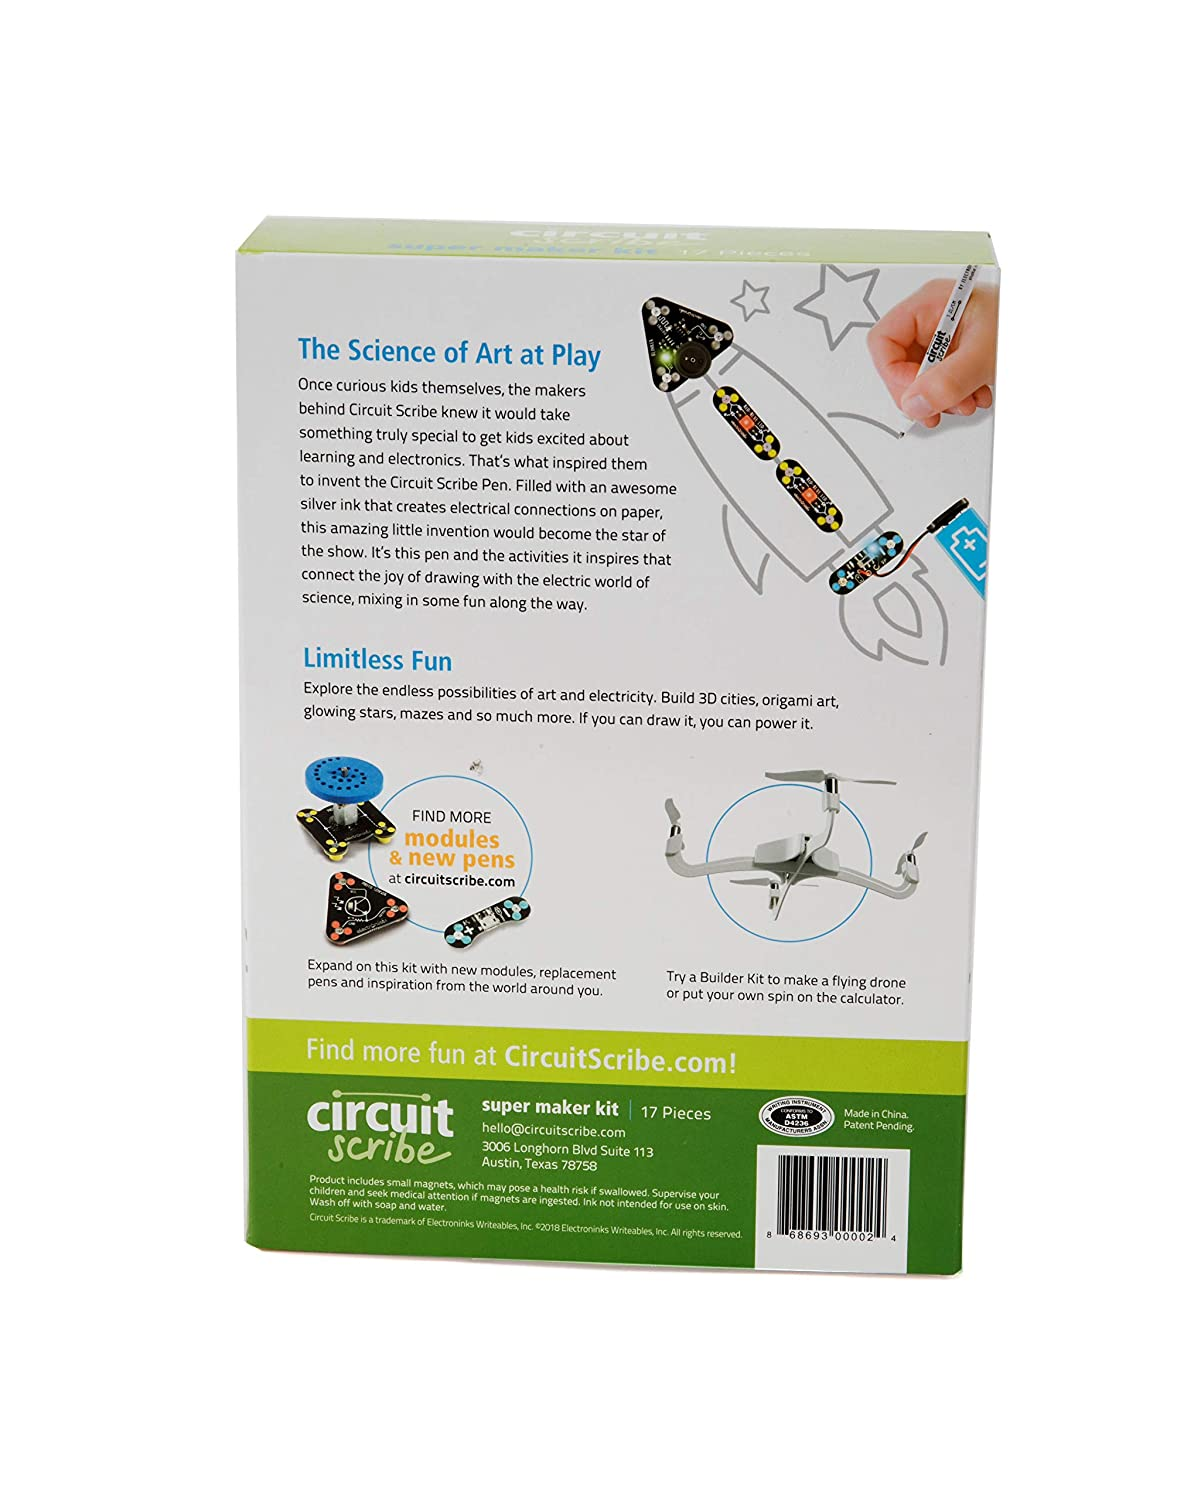 Circuit Scribe Maker Kit Includes Stem Workbook Board Images Of Conductive Silver Ink Pen And Everything You Need To Learn Explore Create Your Own